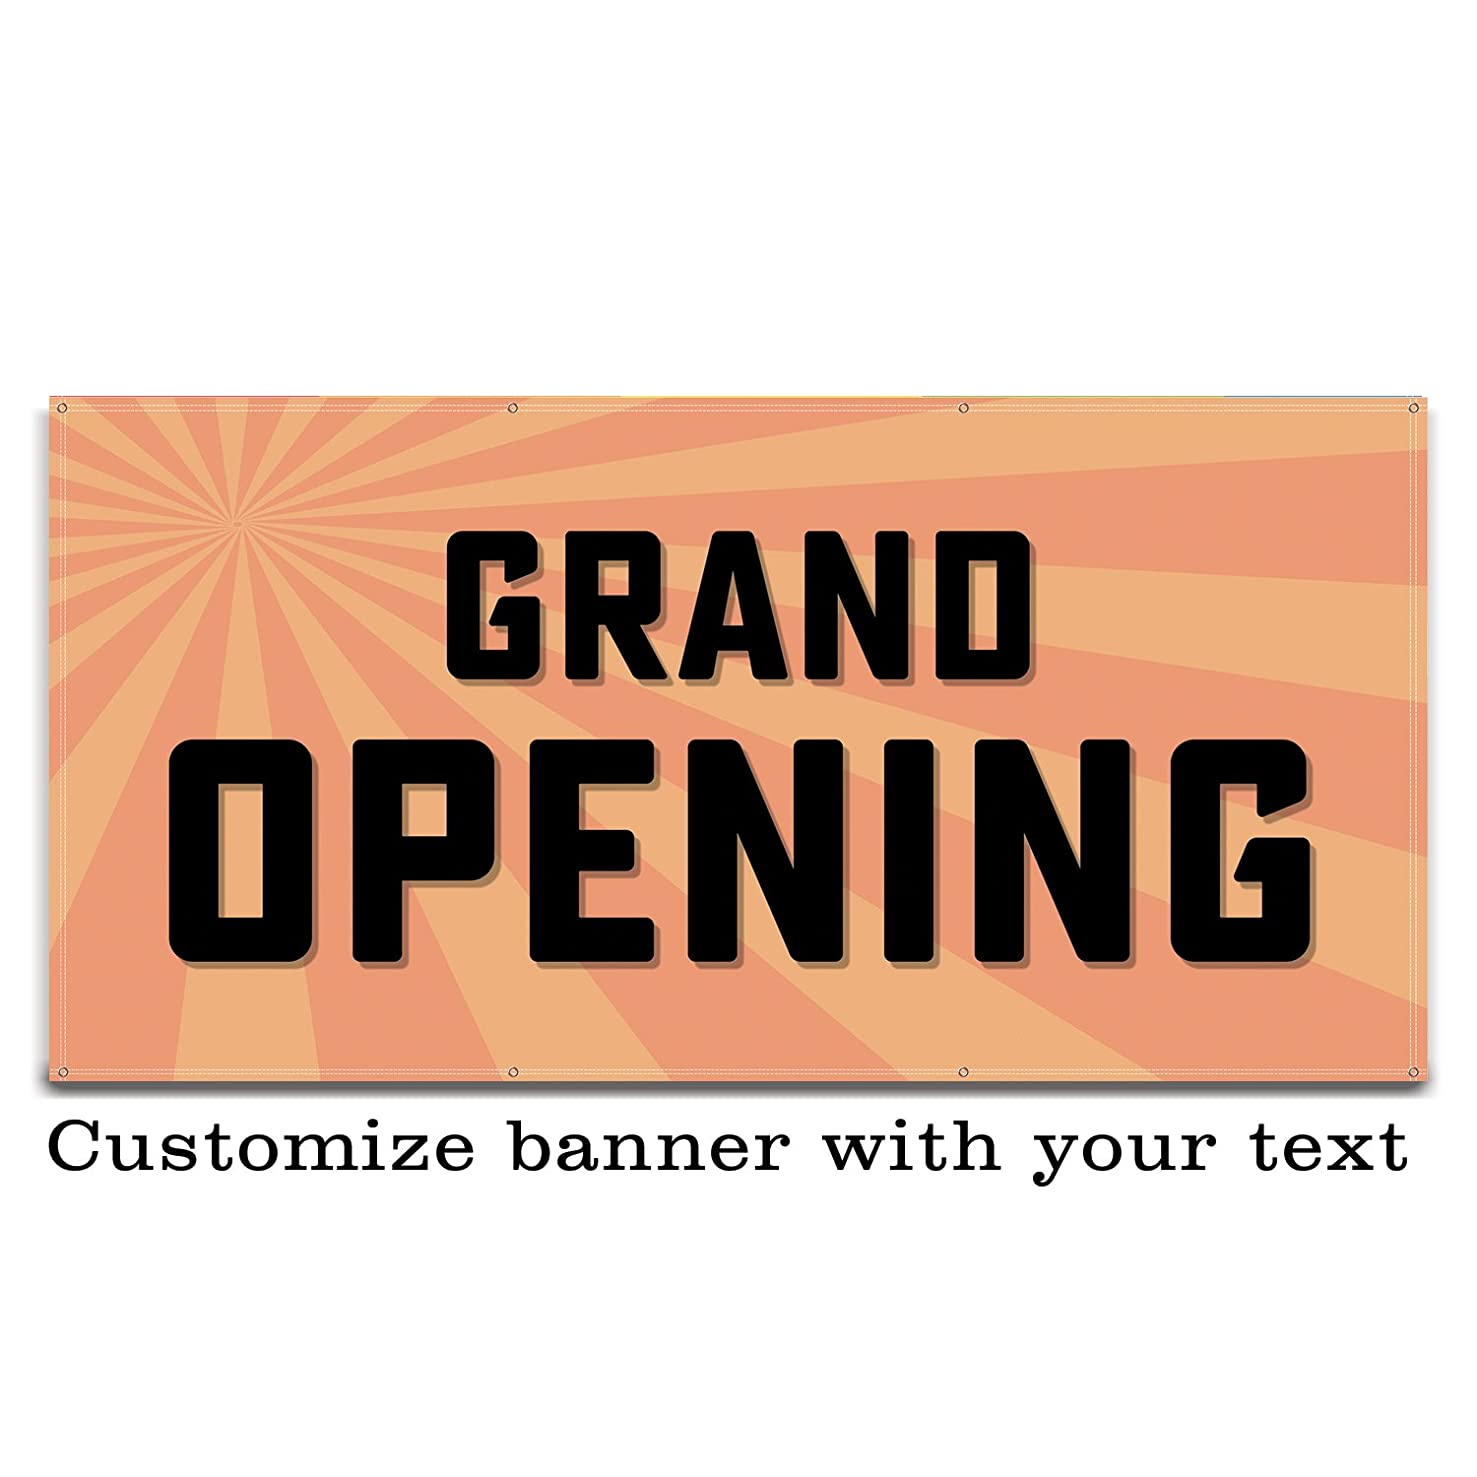 Buttonsmith Custom Starburst Banner 6'x3' - Indoor/Outdoor - Personalize with Your Text - Designed, Printed, and Assembled in USA